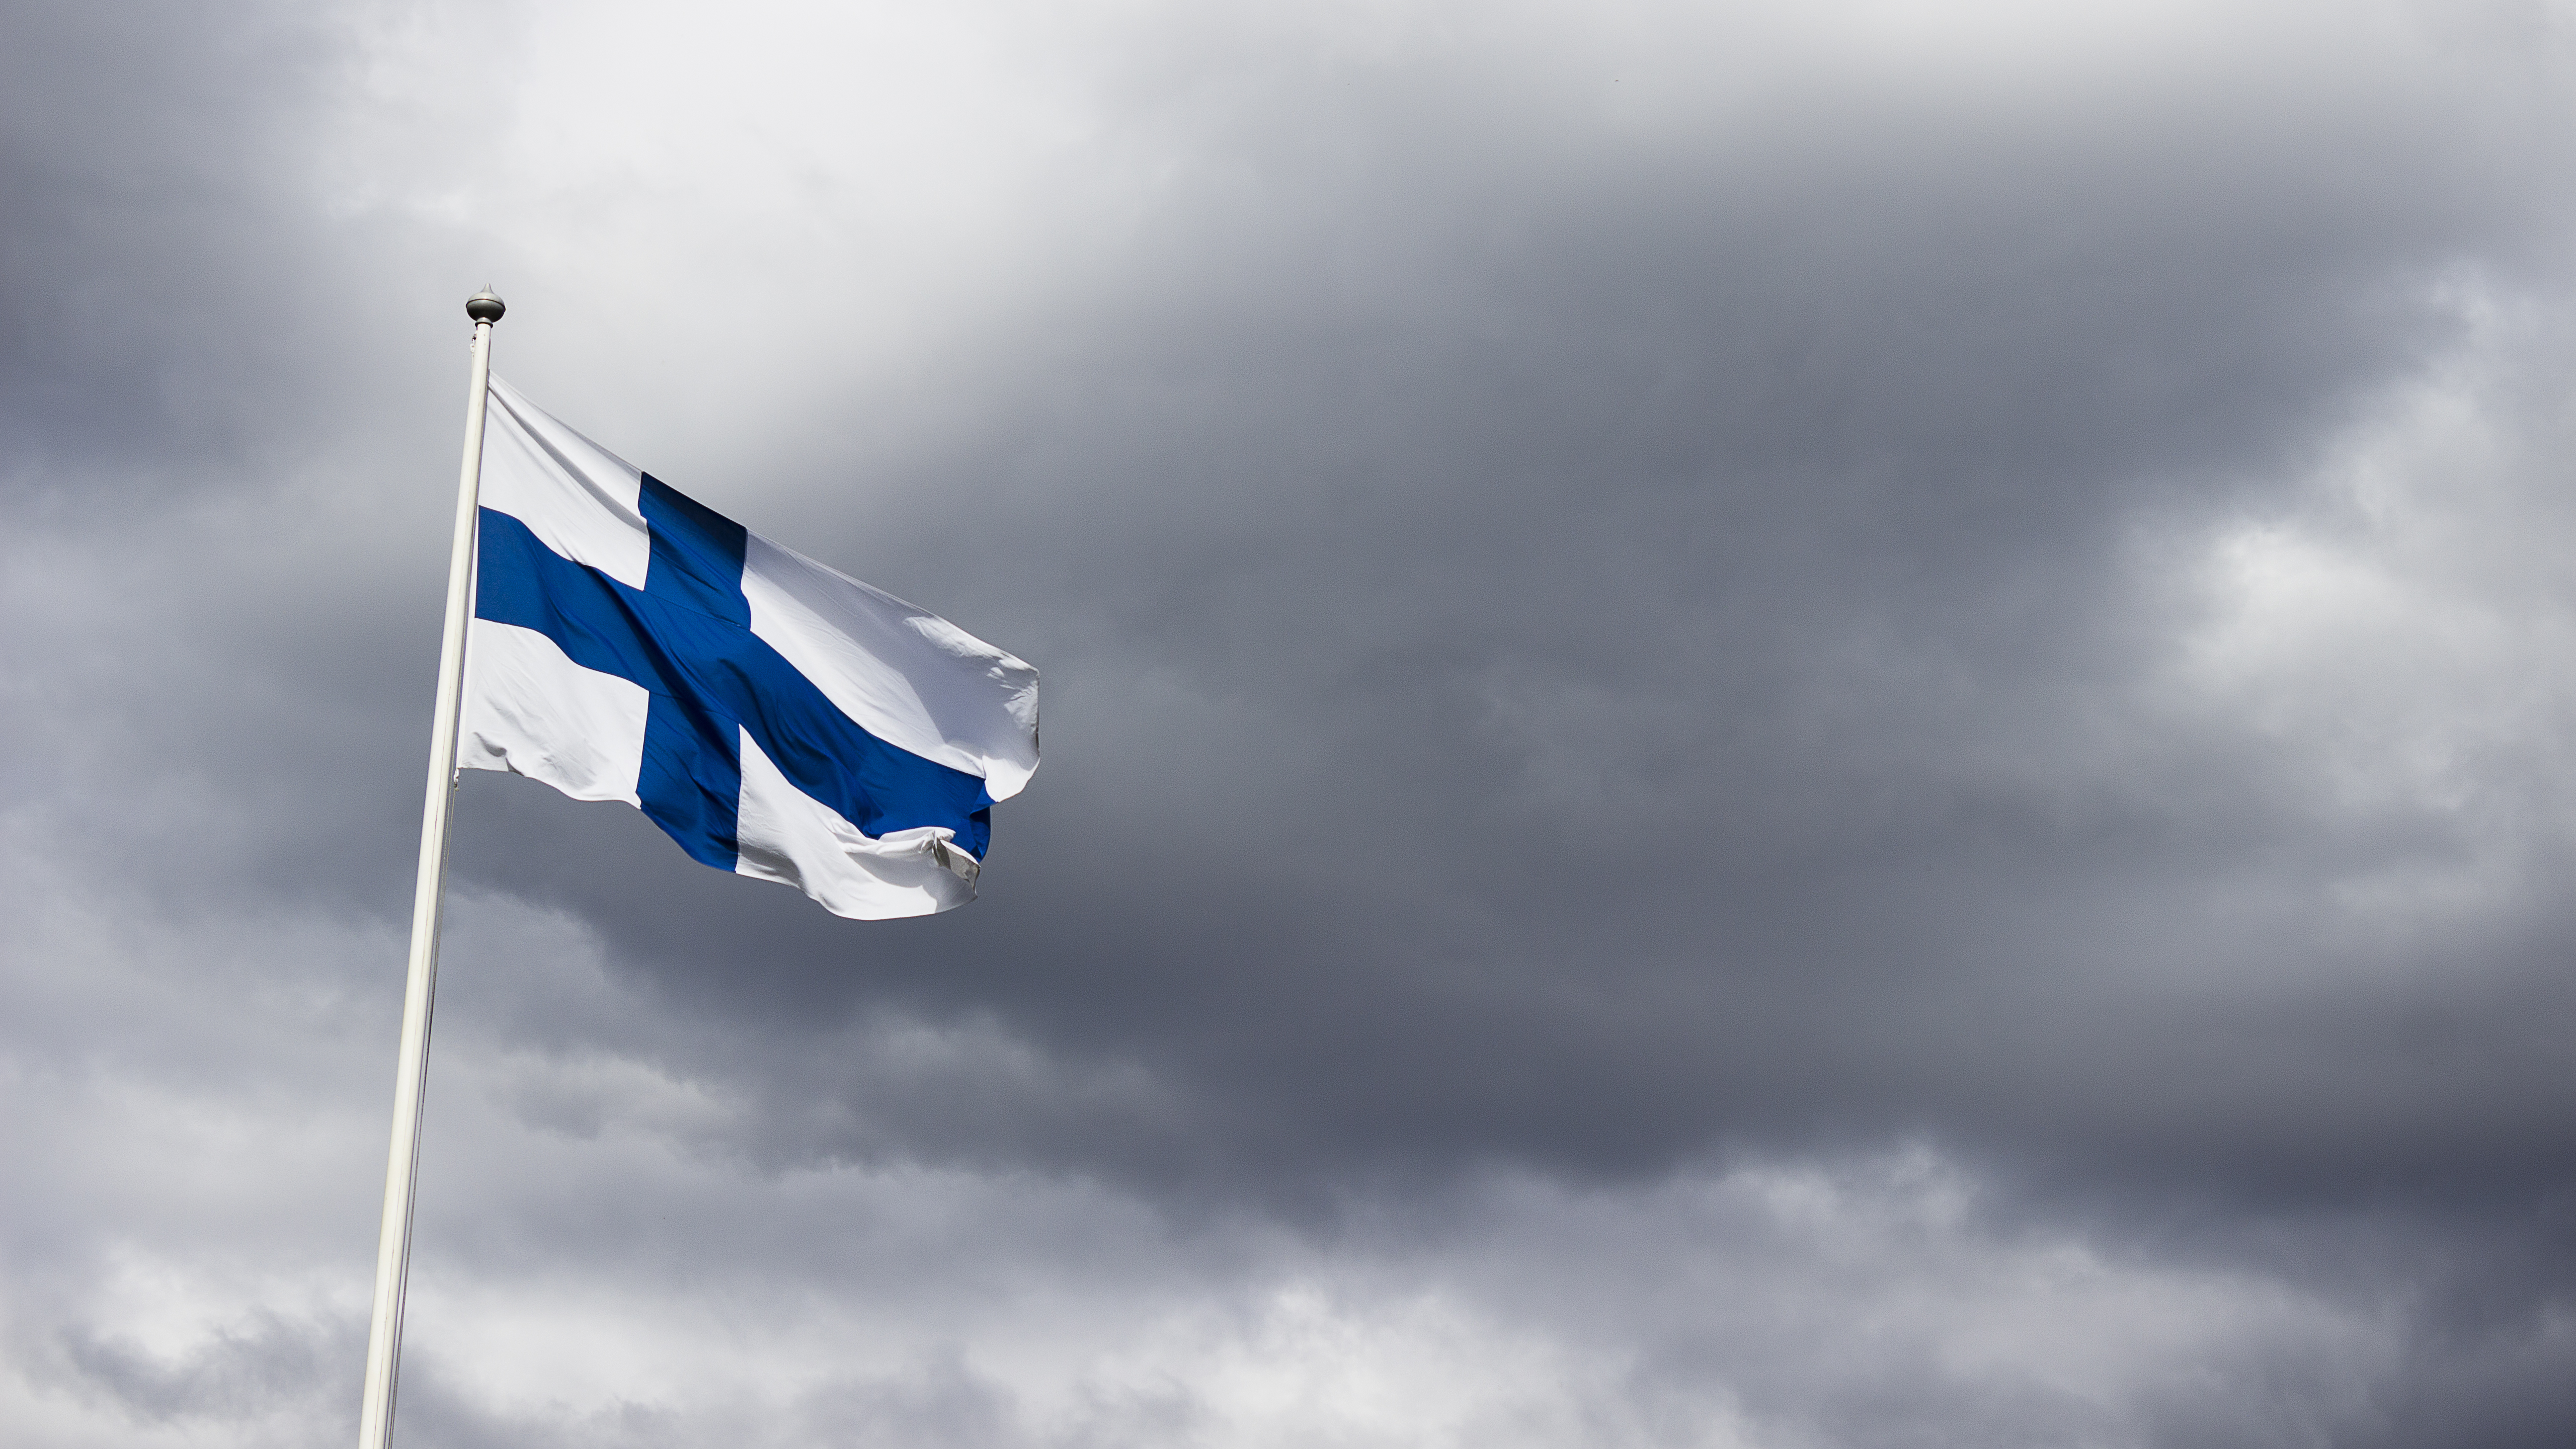 Finland Moves To Make Unsolicited Explicit Images Illegal